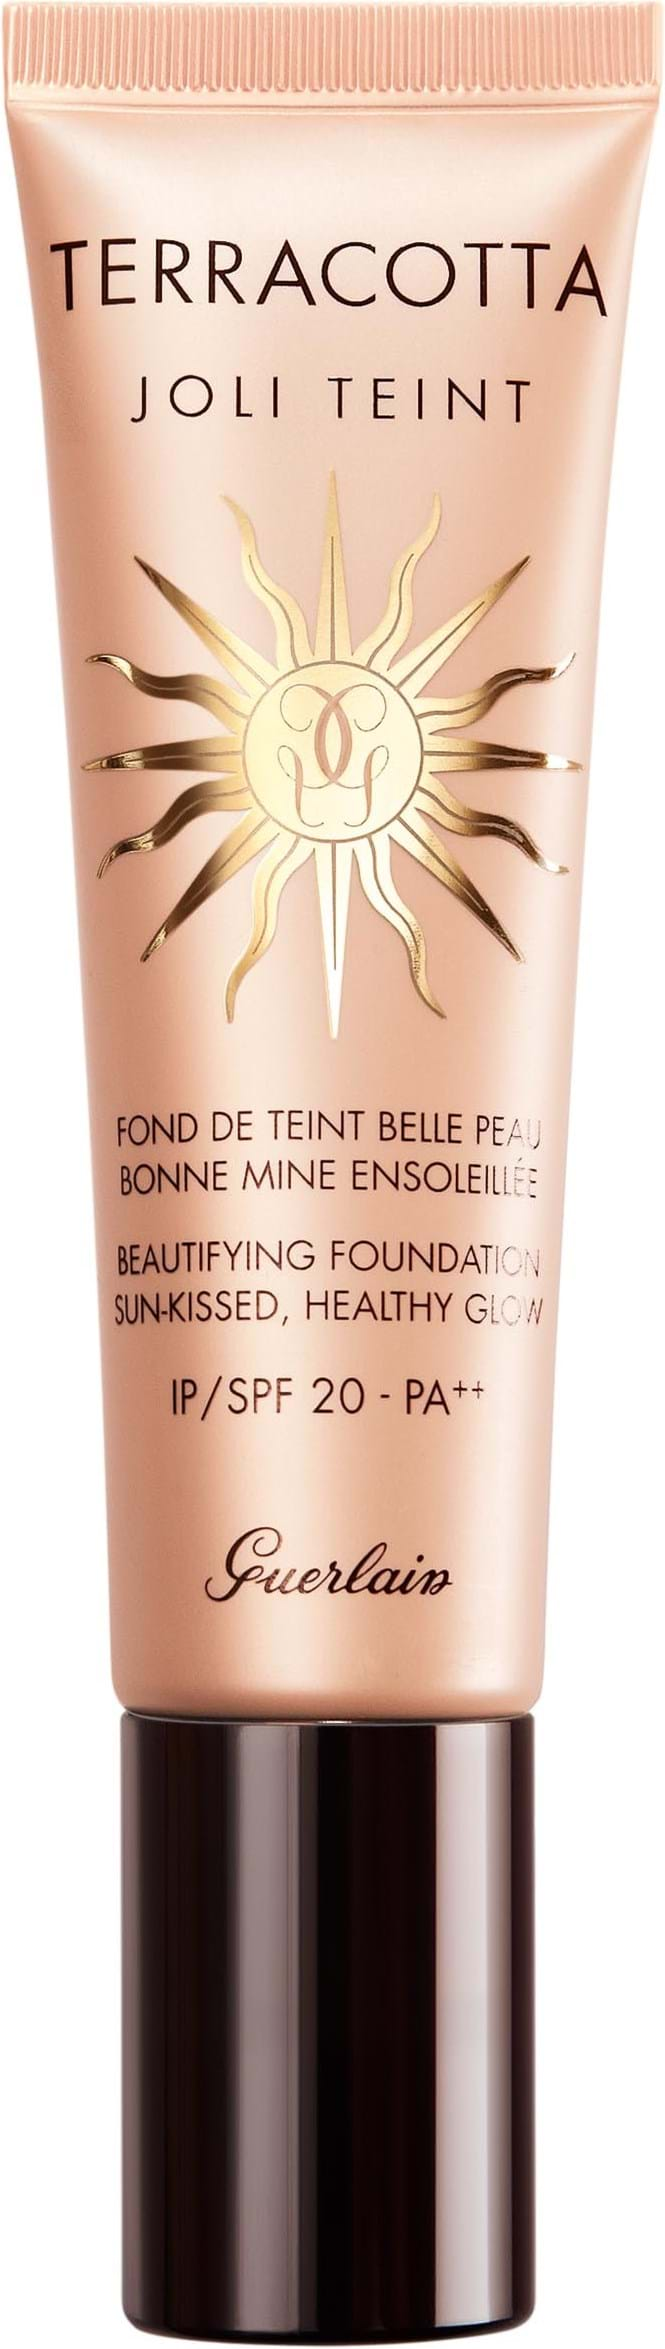 Guerlain Terracotta - Joli Teint N° 3 Medium Foundation 30 ml